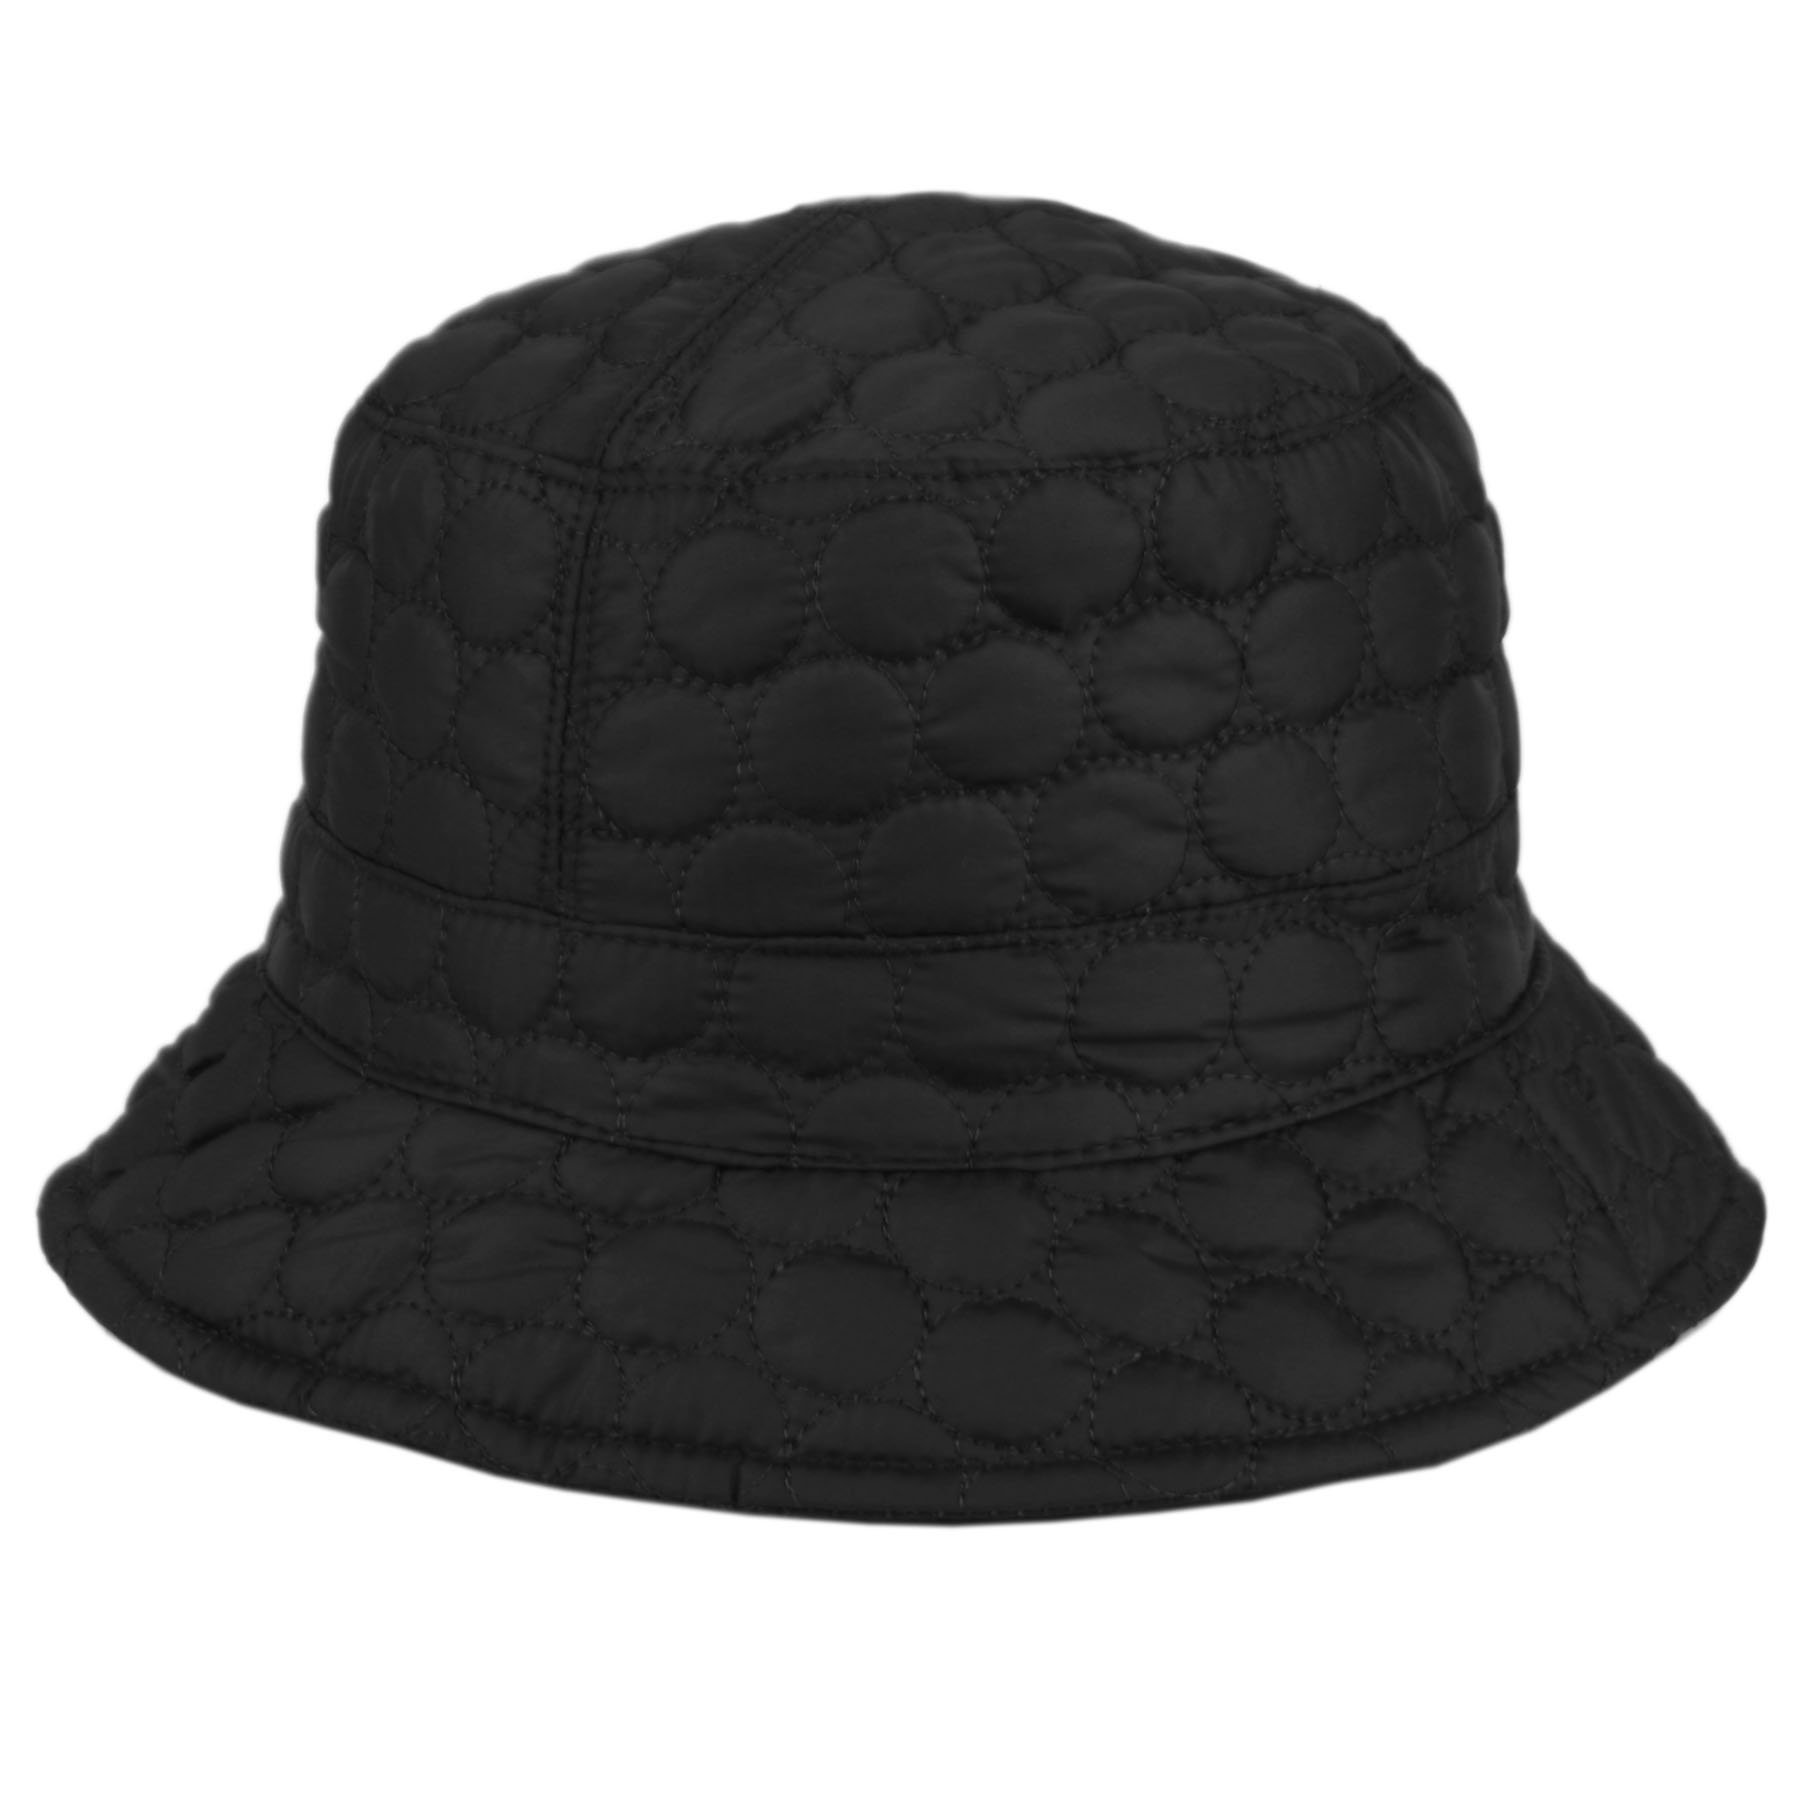 CL2396 Foldable Water Repellent Quilted Rain Hat w/ Adjustable Drawstring, Bucket Hat (BLACK)